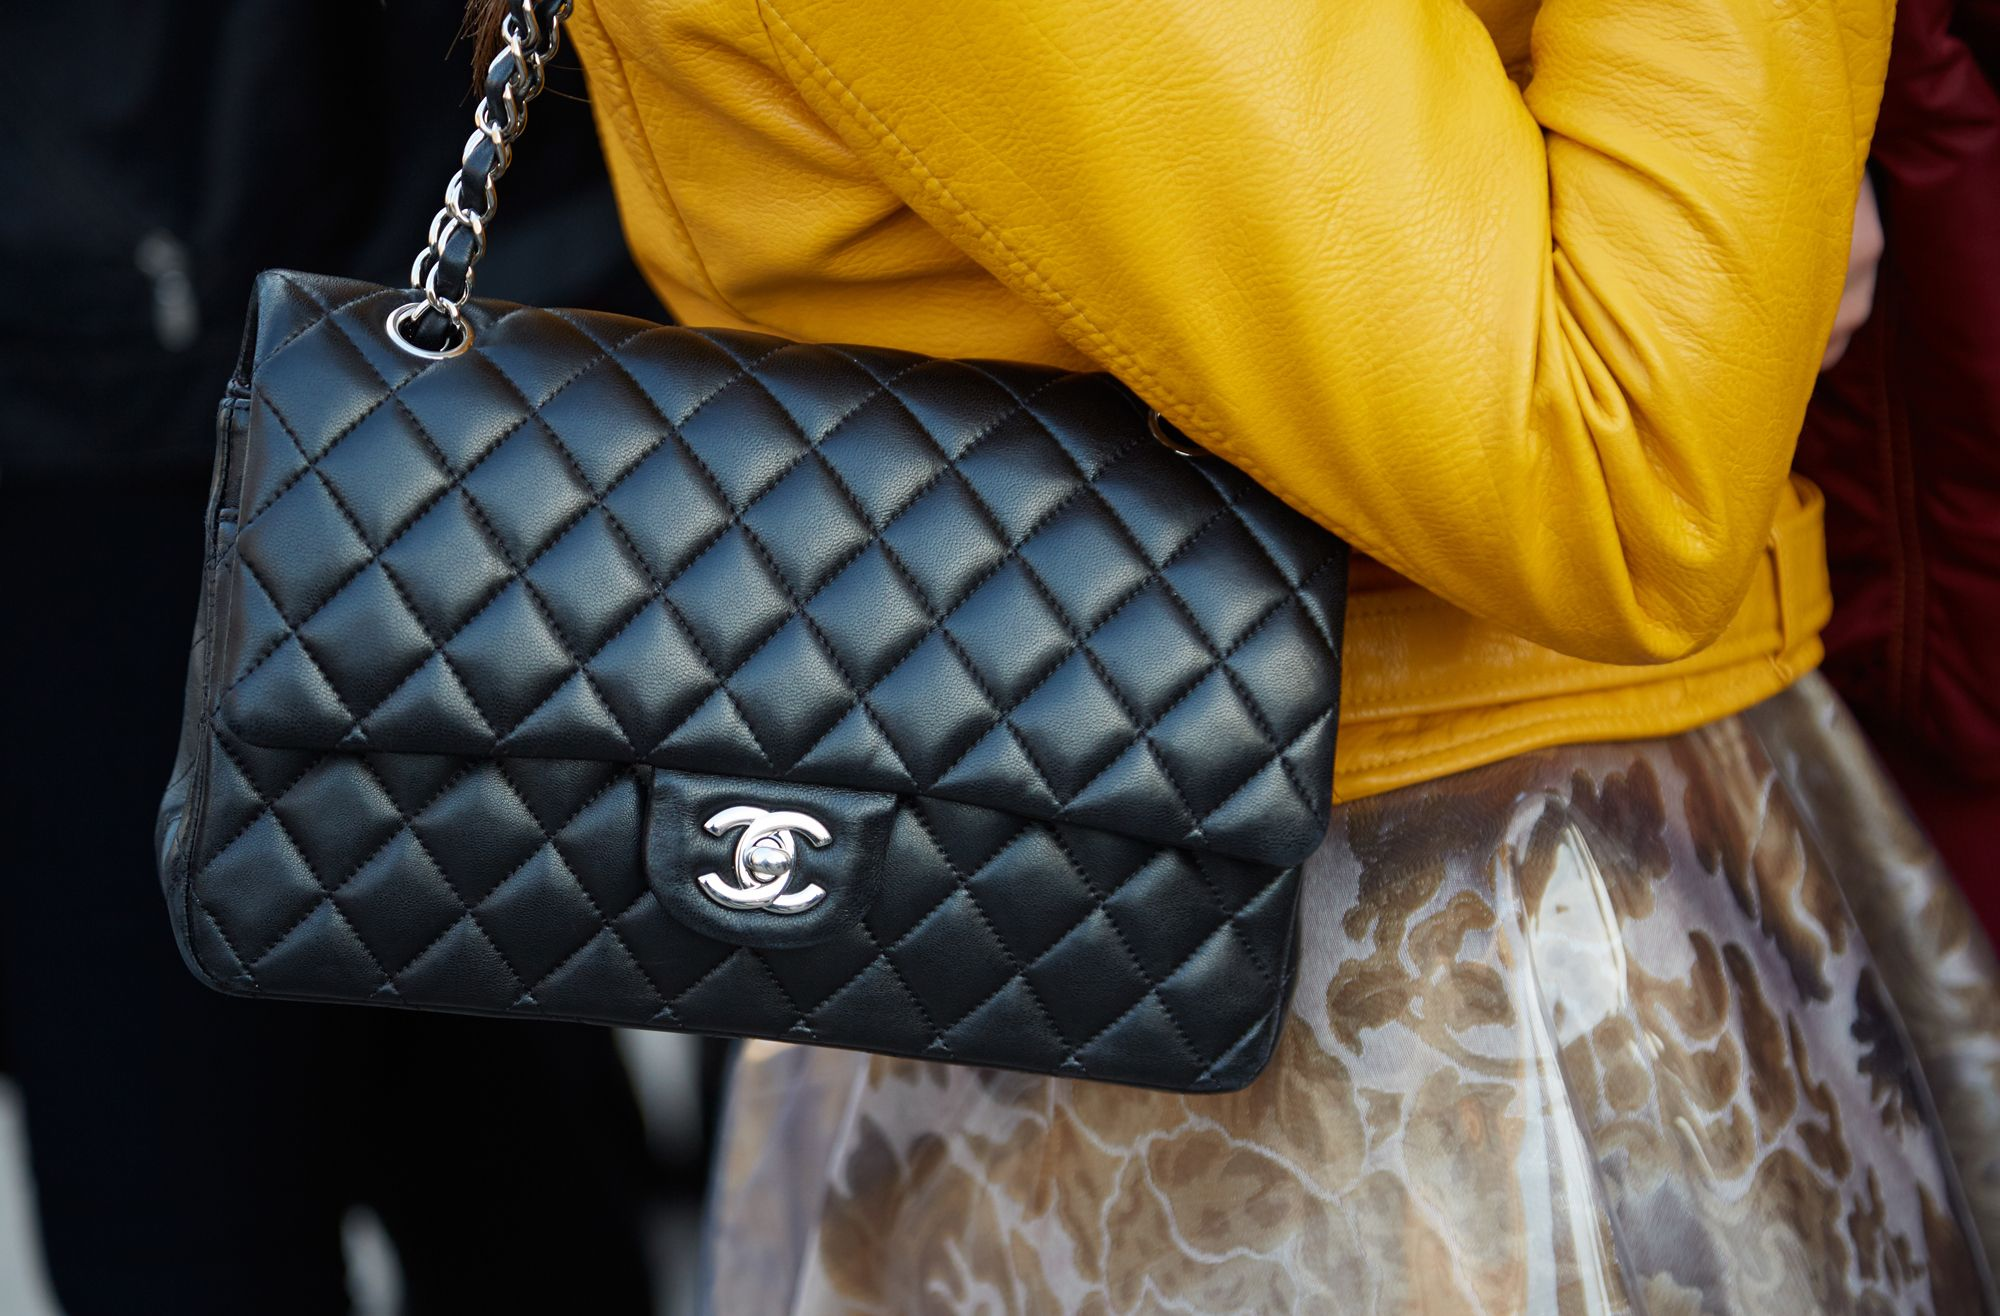 Chanel Investment Bags